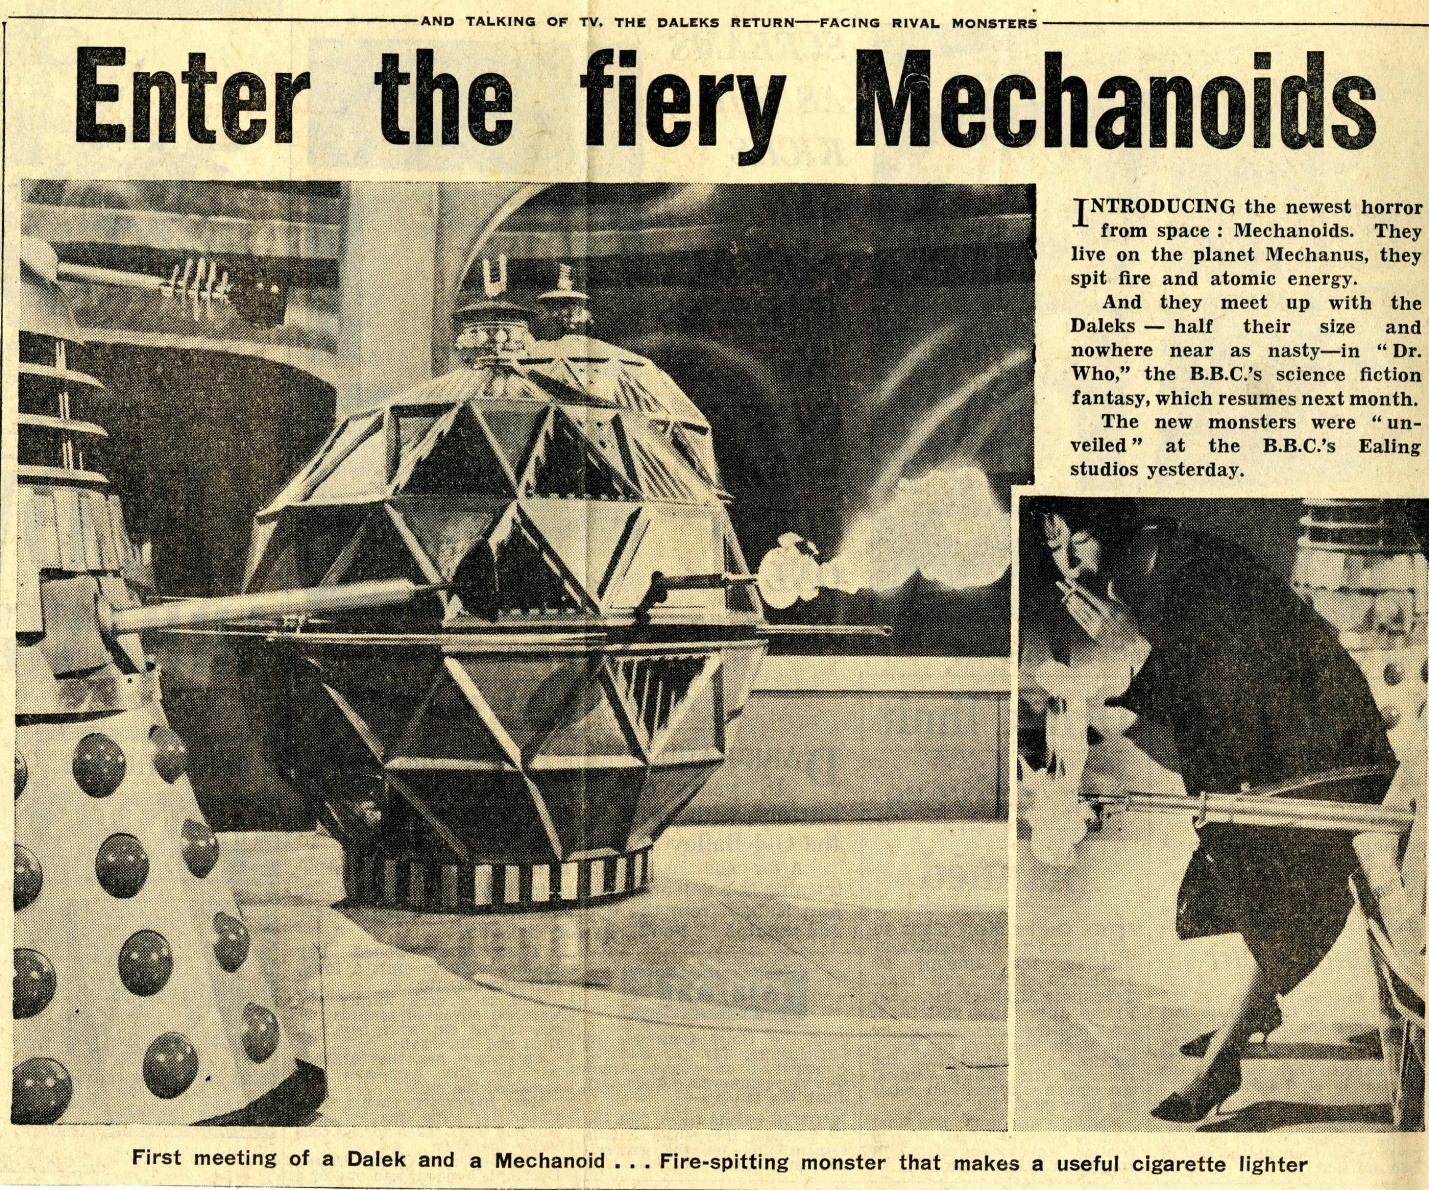 Daily Express, April 15, 1965 (from the Raymond Cusick cuttings collection)